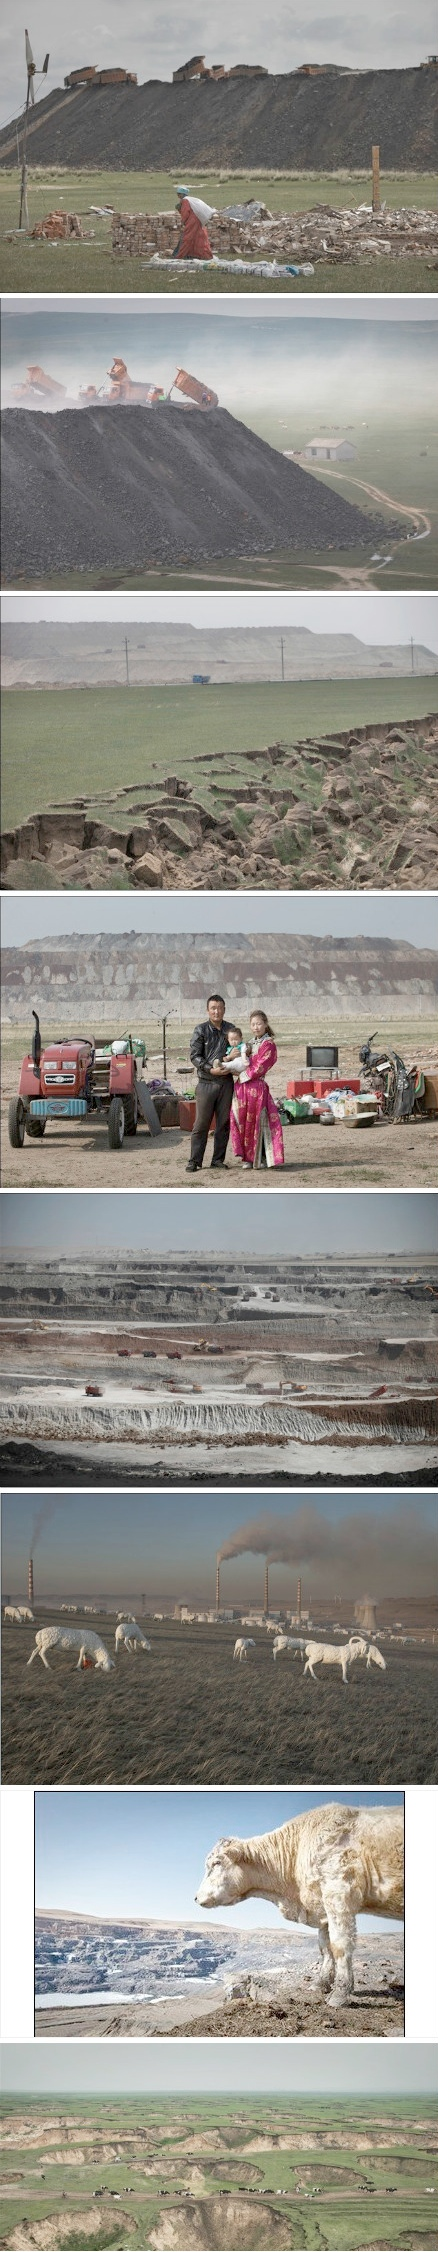 Hulunbuir Grassland destroyed by coal mining activities. Baoyi's Weibo Photos.